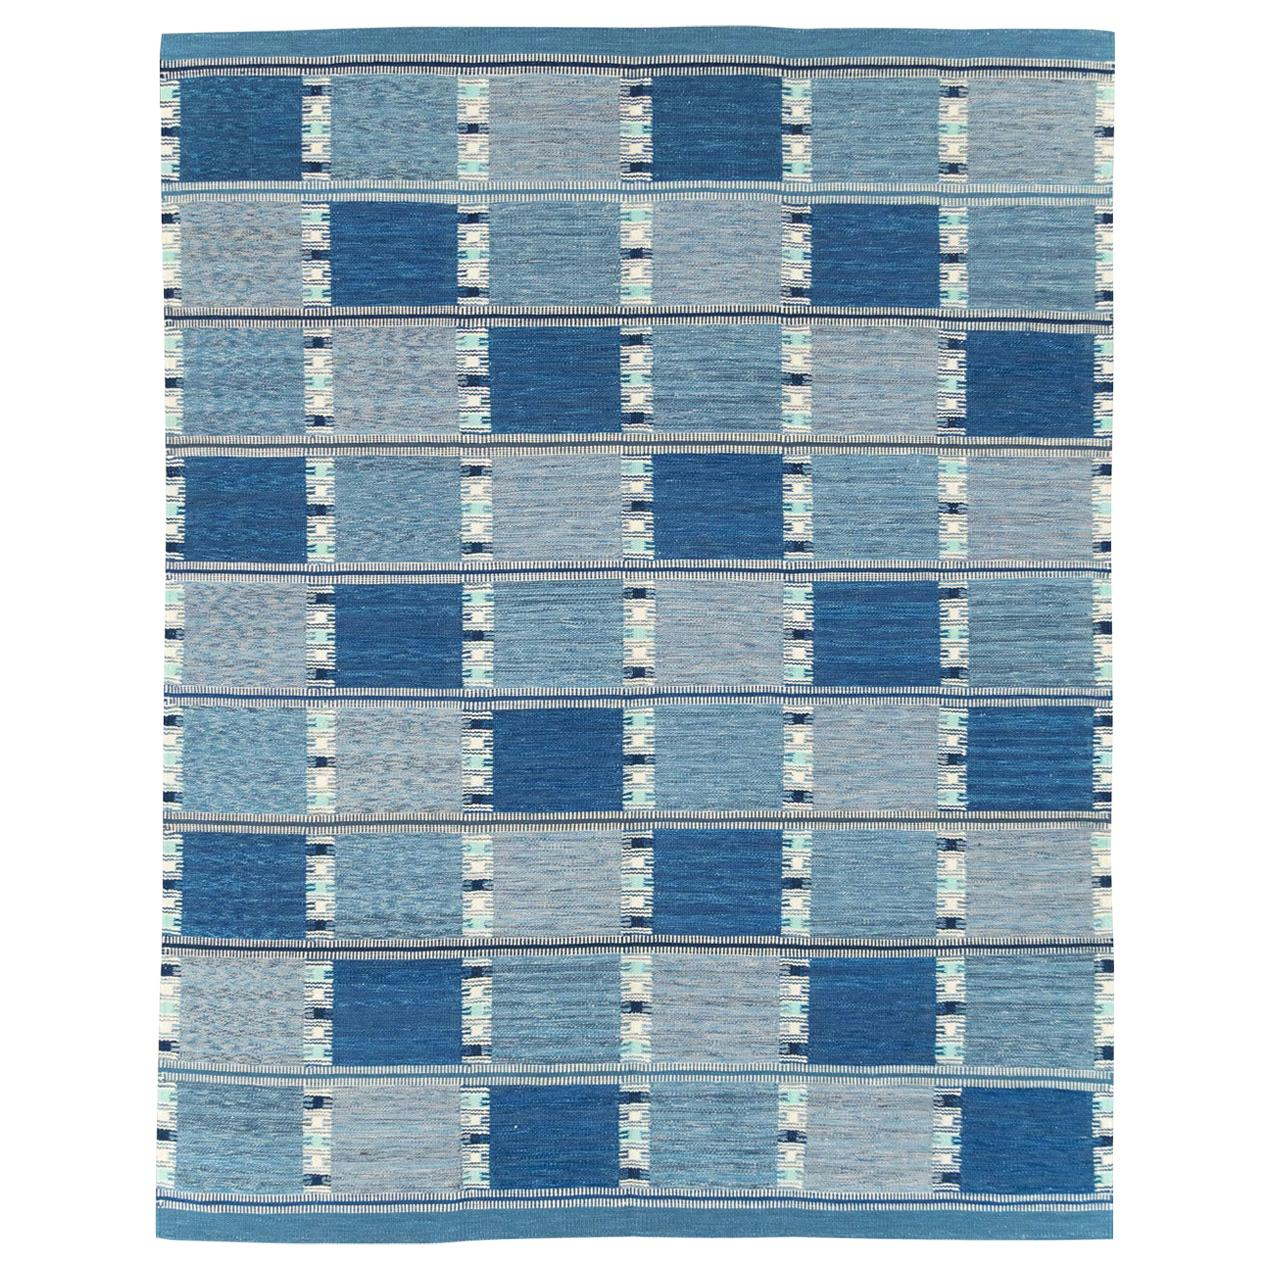 Blue Contemporary Turkish Flat-Weave Room Size Carpet Inspired by Swedish Kilims